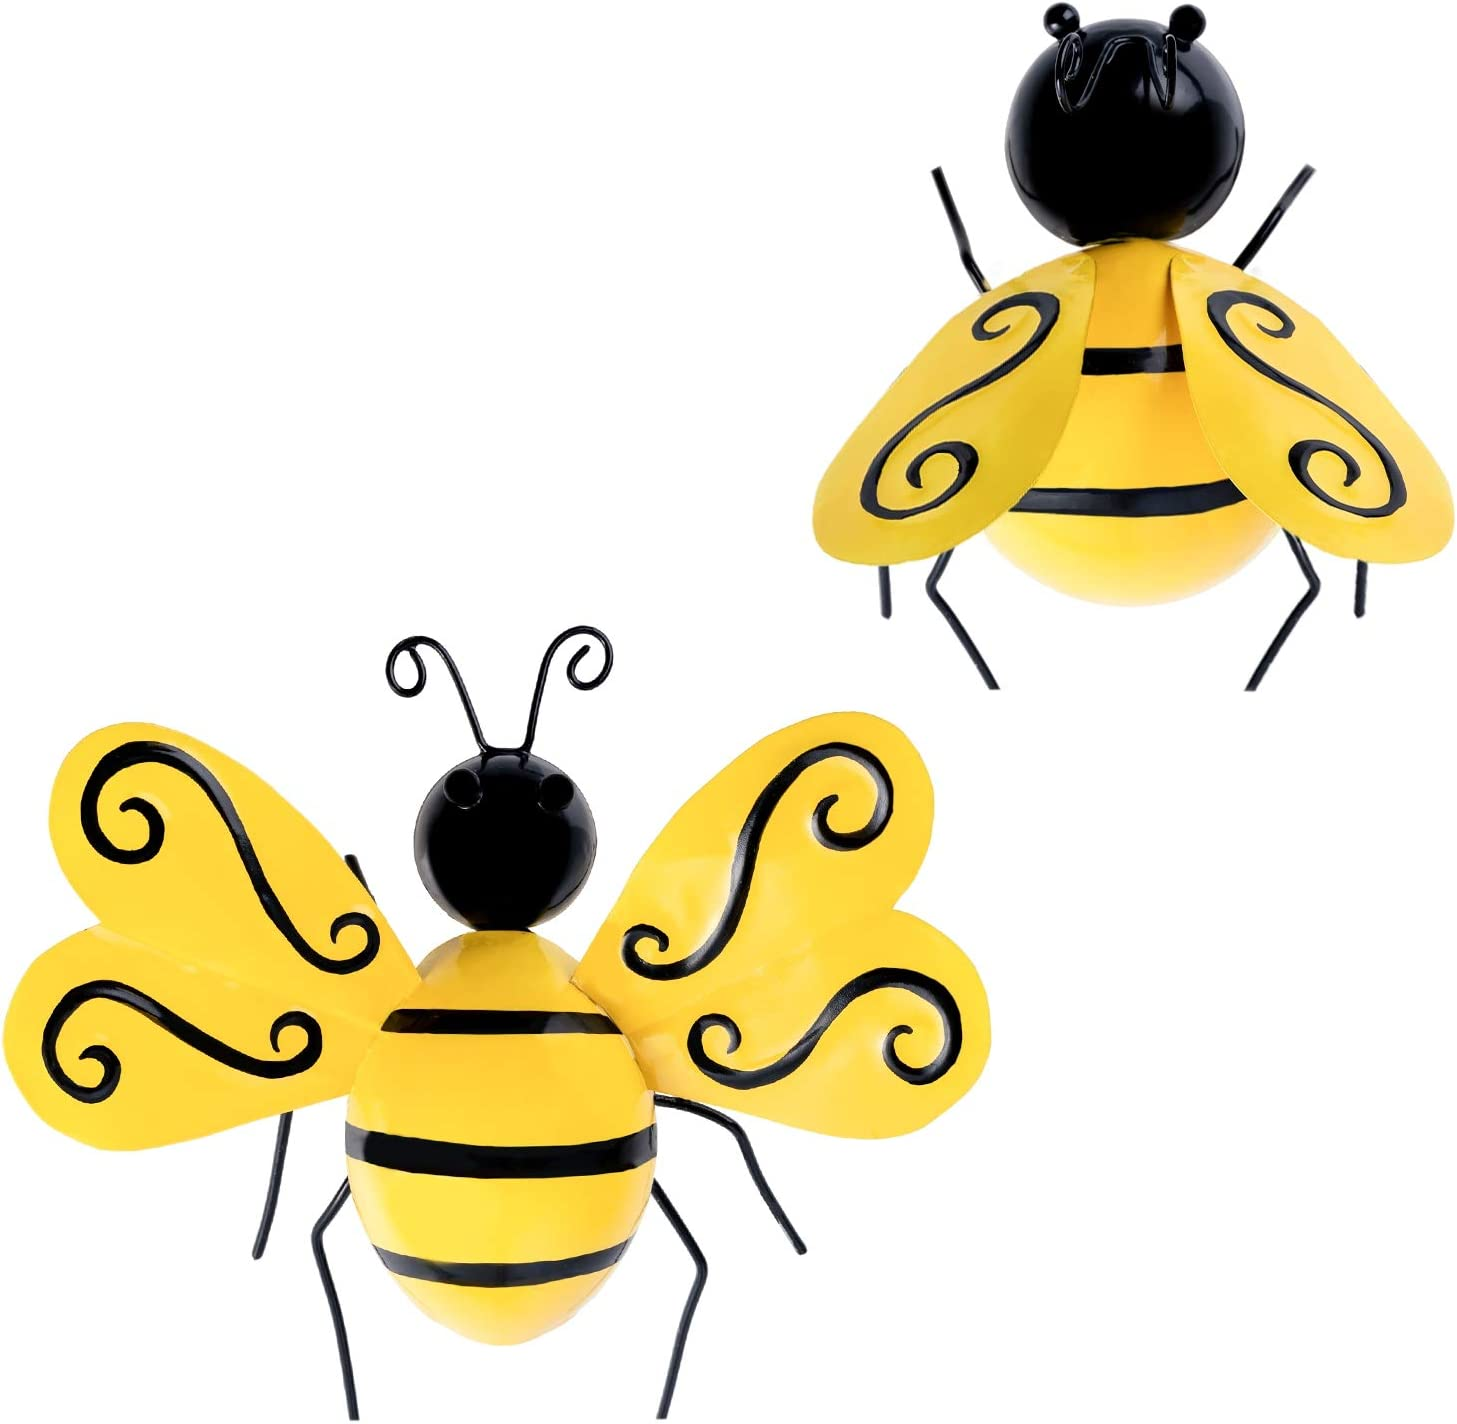 YEAHOME Cute Bees Metal Wall Art, 3D Wall Decor, Vibrant Yellow Wall Sculptures & Statues for Farmhouse, Porch, Patio, Lawn, Fence, Backyard Set of 2